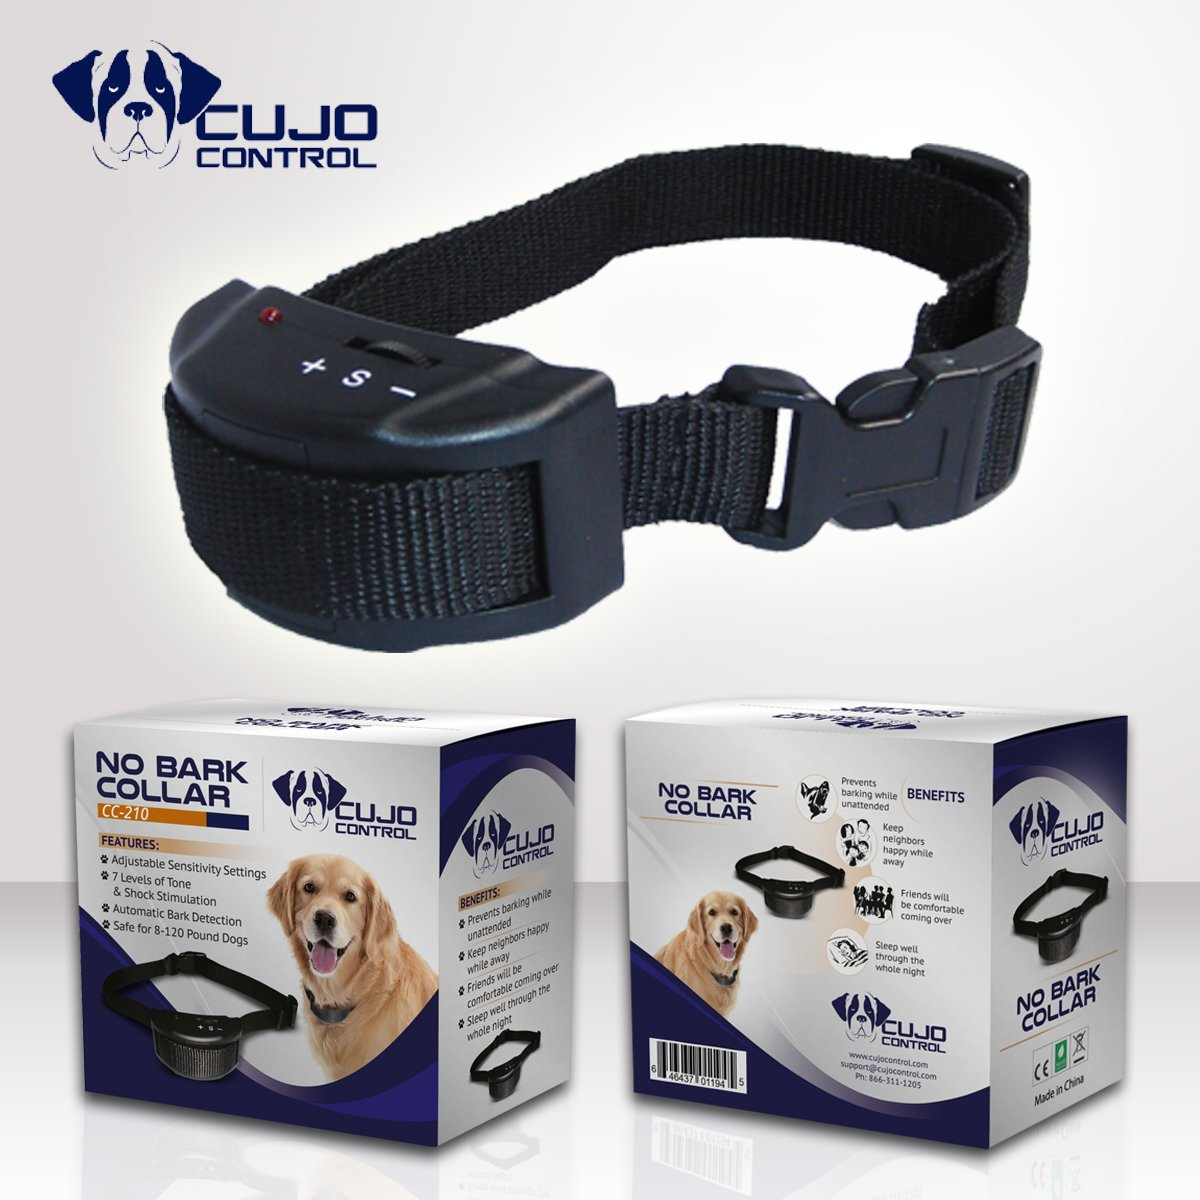 OOS Cujo Control Anti Bark Collar-Best No Bark Collar for Small Breeds M & L